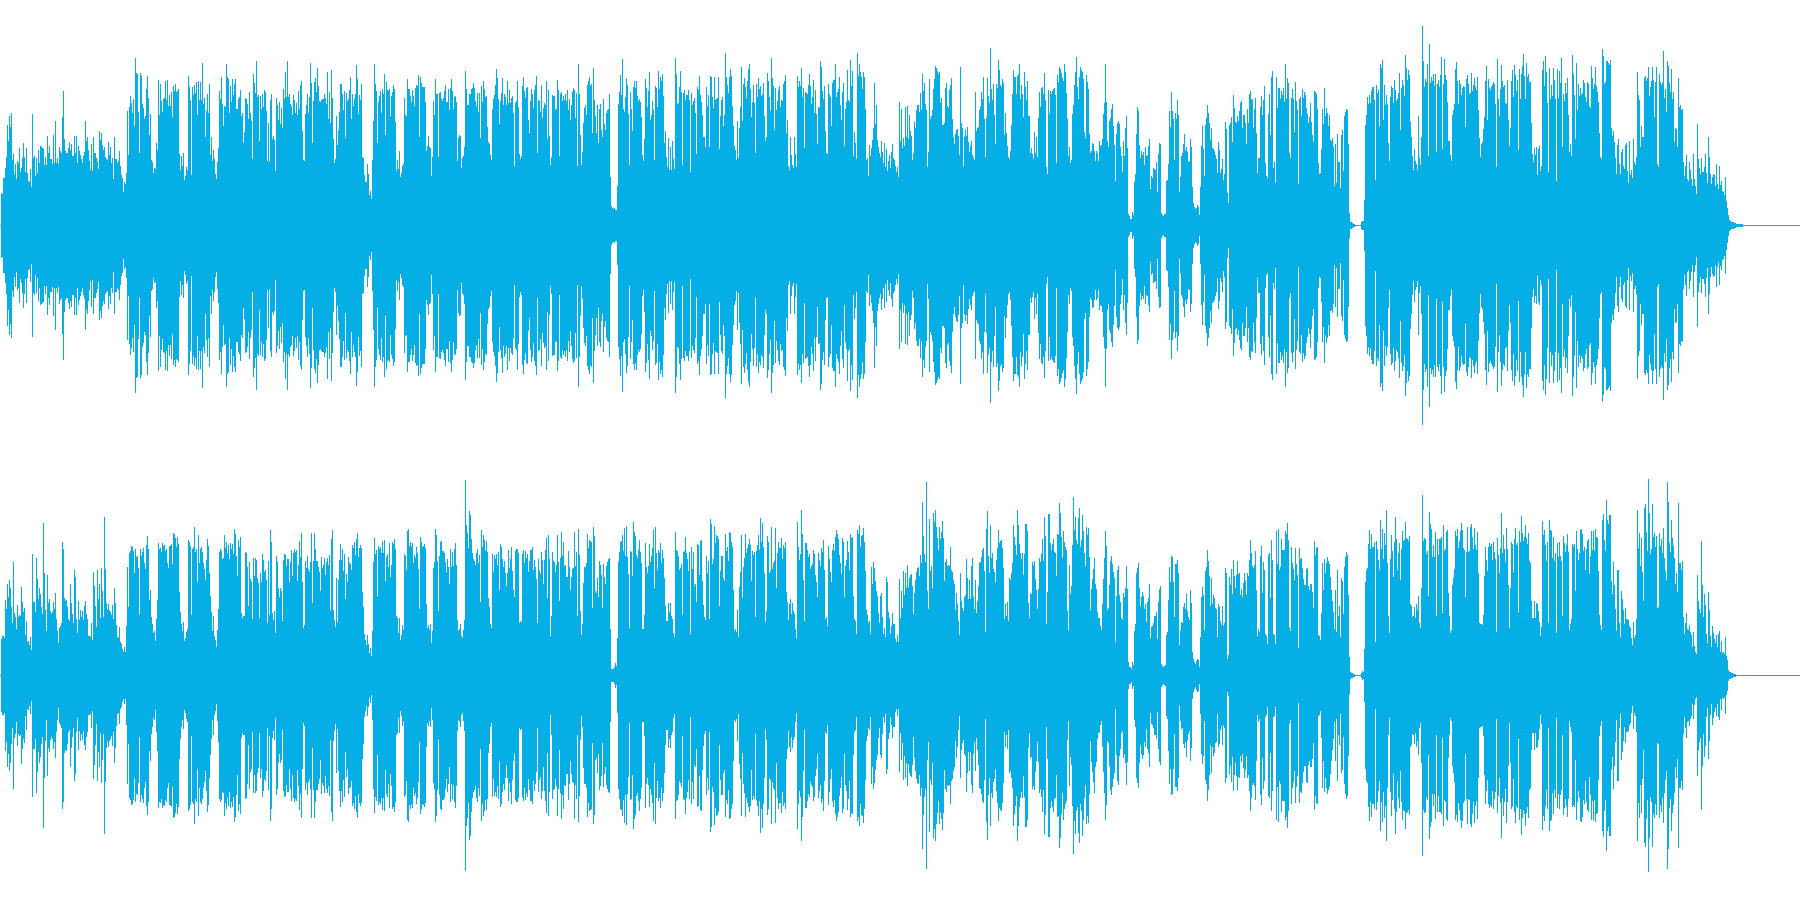 Mid-tempo pop with an impressive piano's reproduced waveform